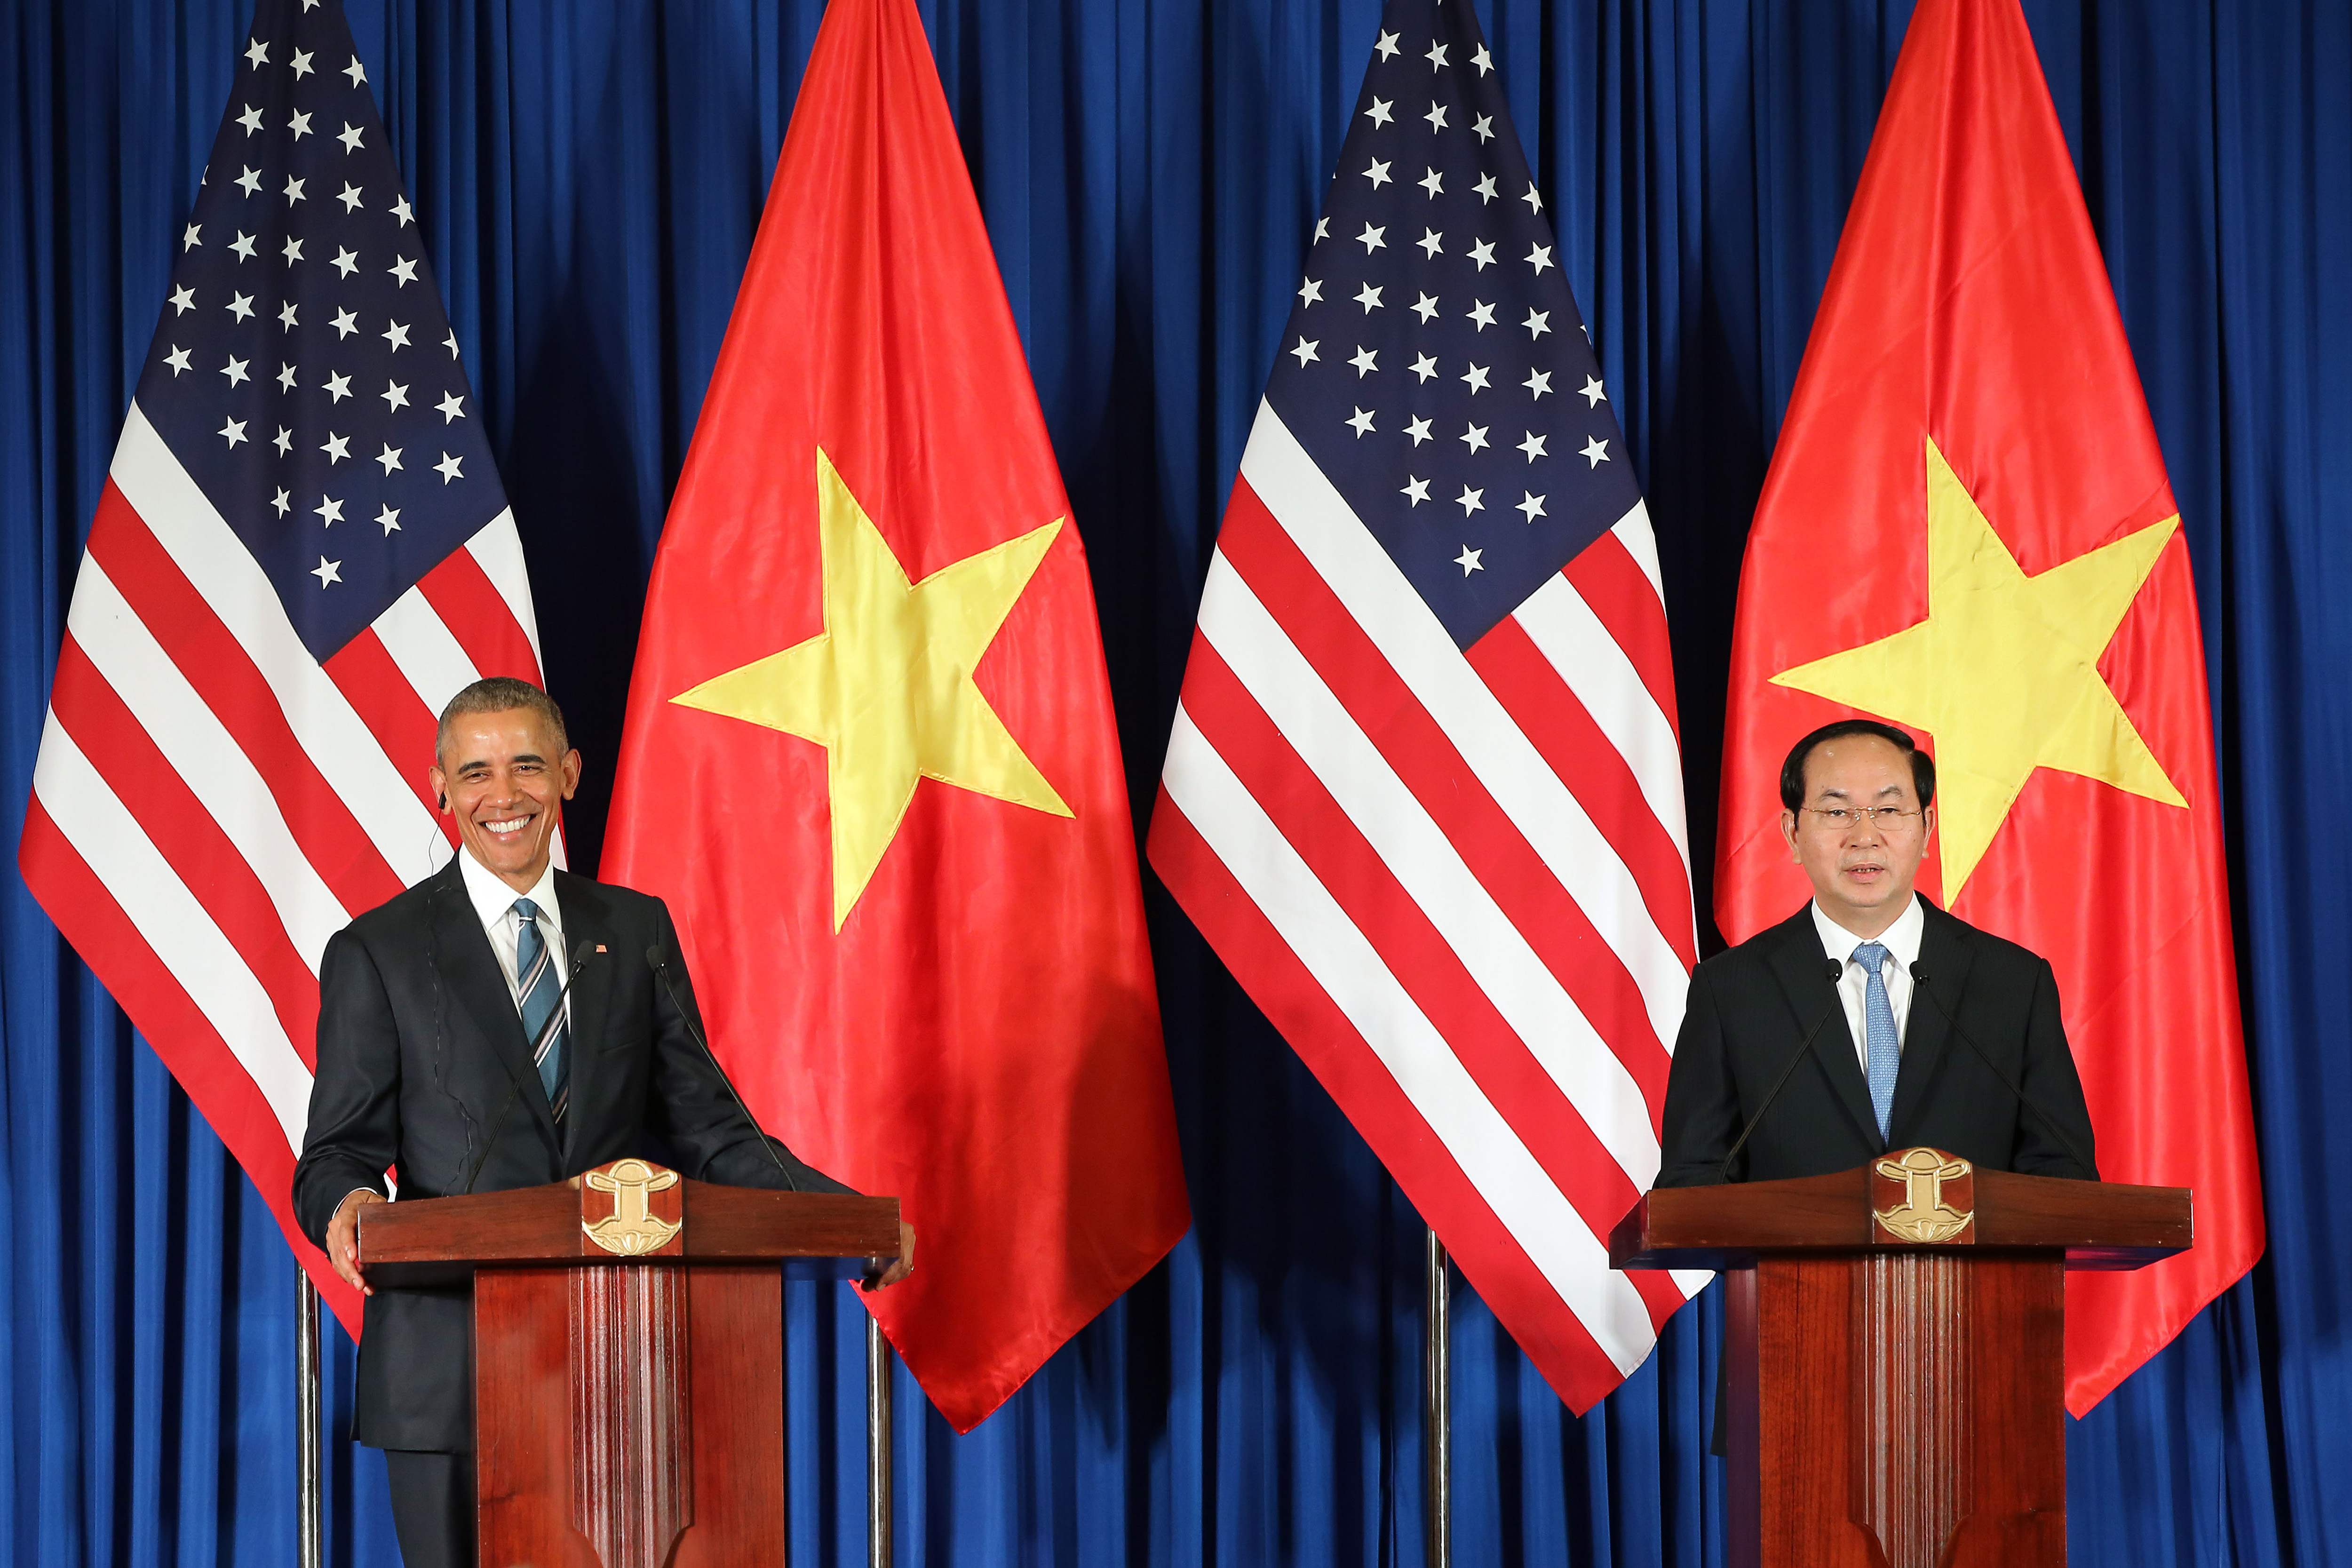 Vietnam's President Tran Dai Quang, right, and US President Barack Obama attend a press conference in Hanoi, Vietnam, May 23, 2016.